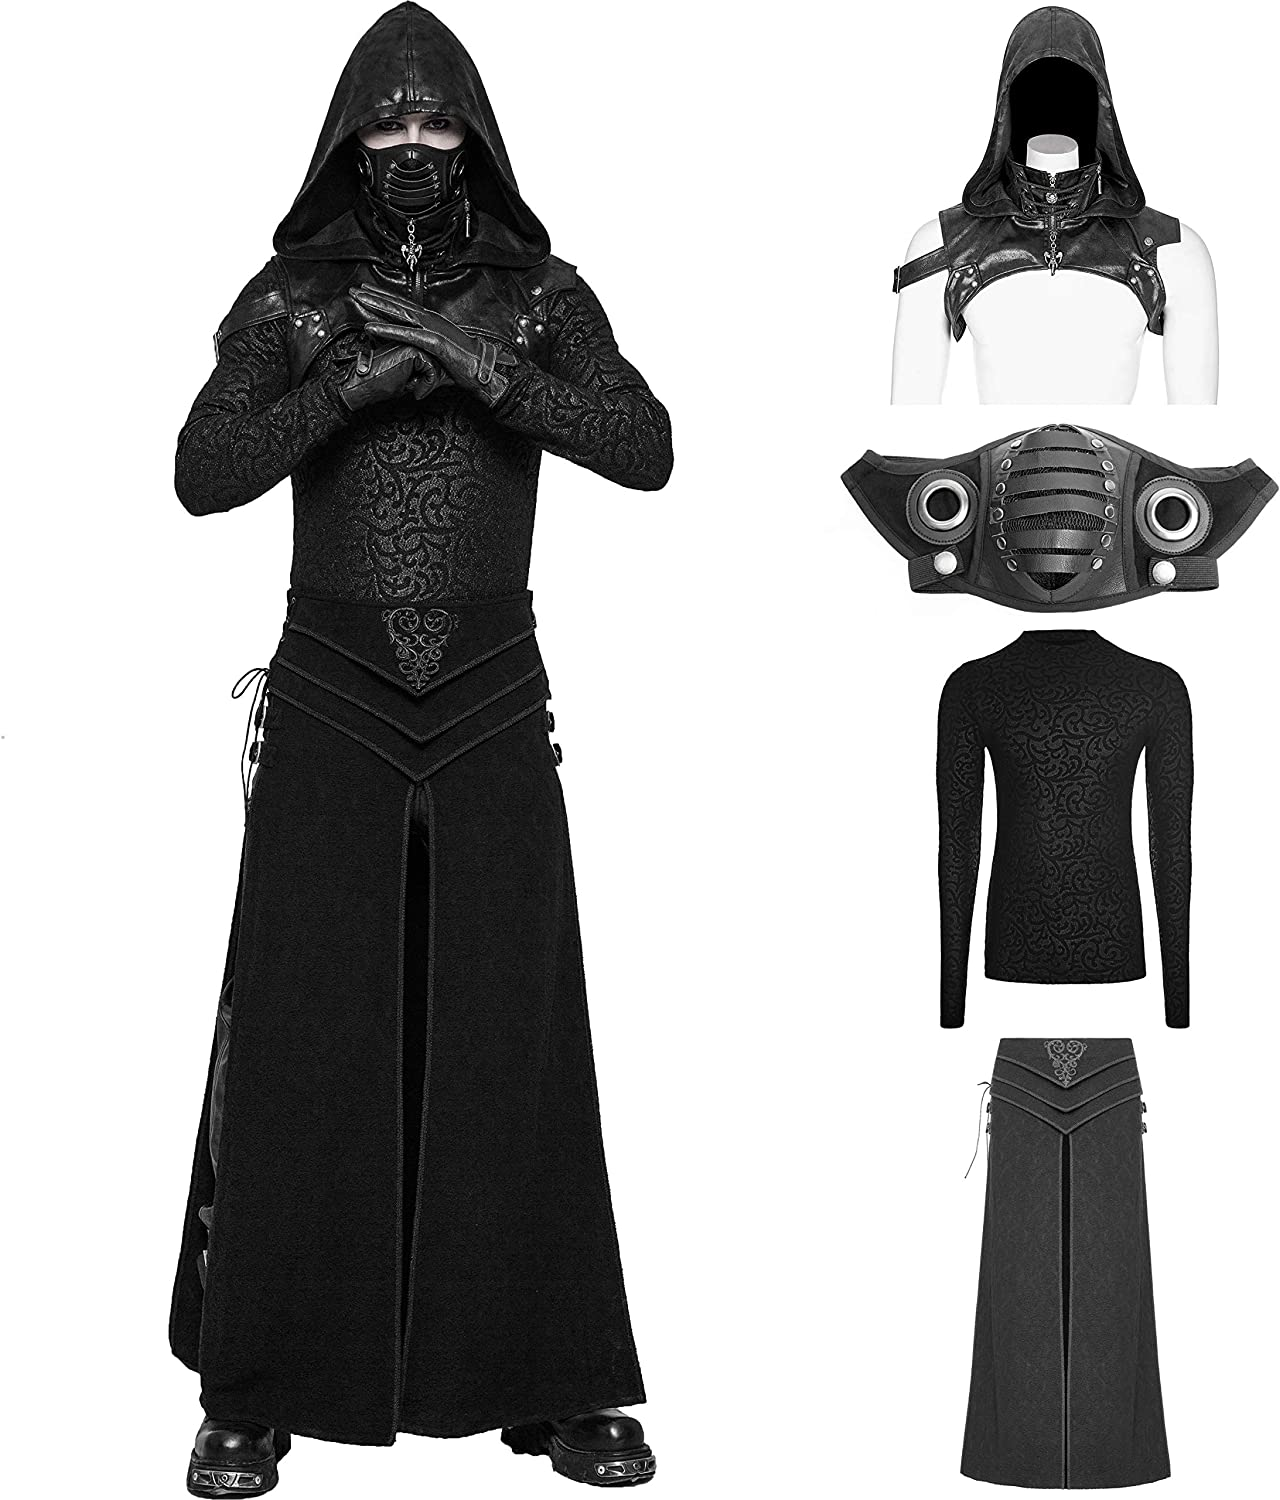 Long Beach Mall Punk Rave Men's Black Vintage Super special price Gothic Mask Assassin's Creed